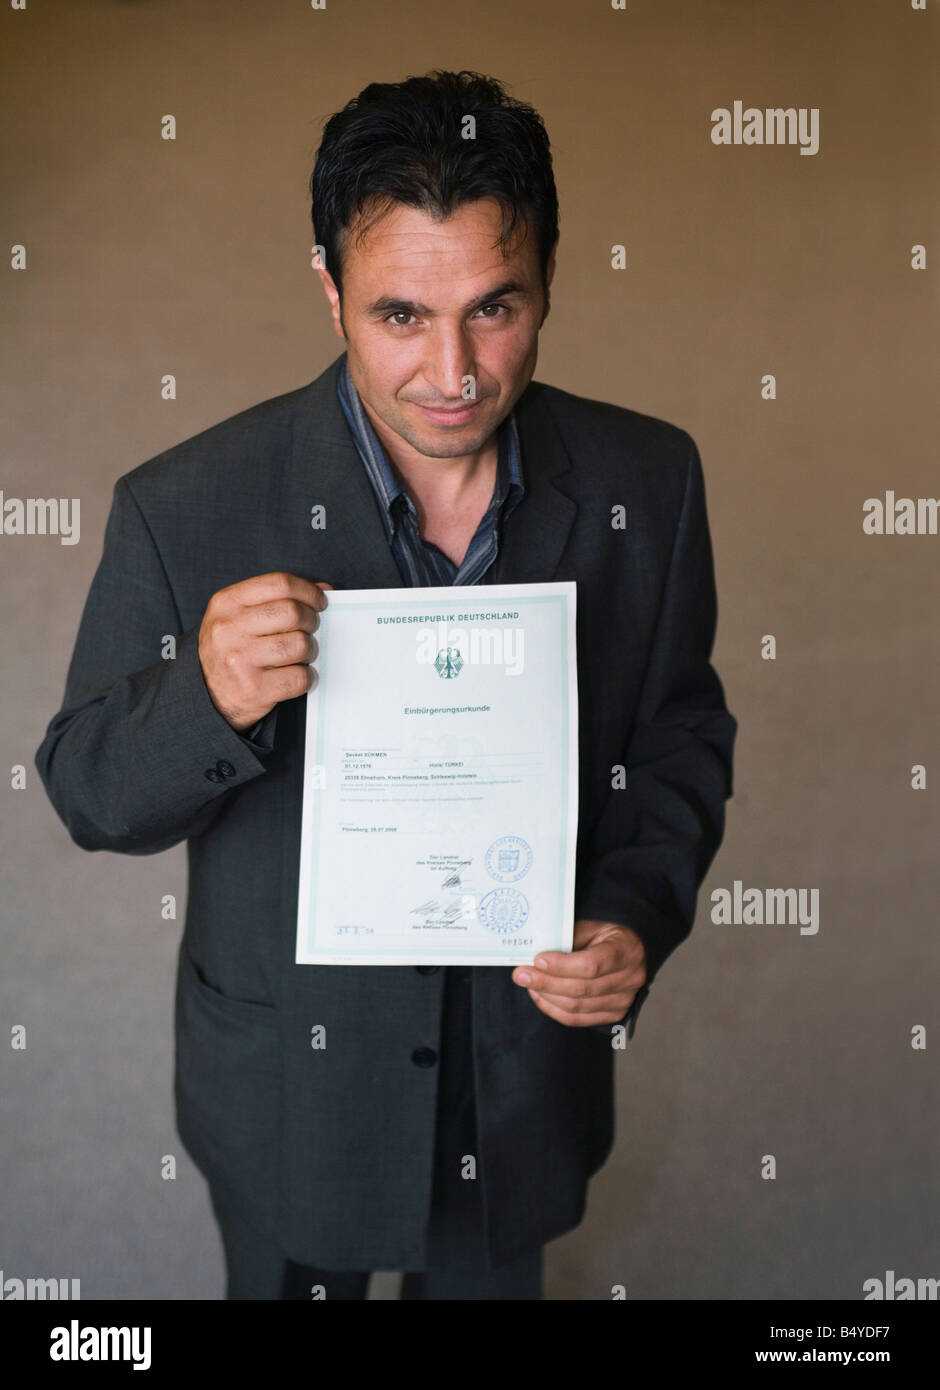 After the naturalization ceremony with the conferment of the after the naturalization ceremony with the conferment of the german citizenship immigrant with naturalization certificate 1betcityfo Choice Image